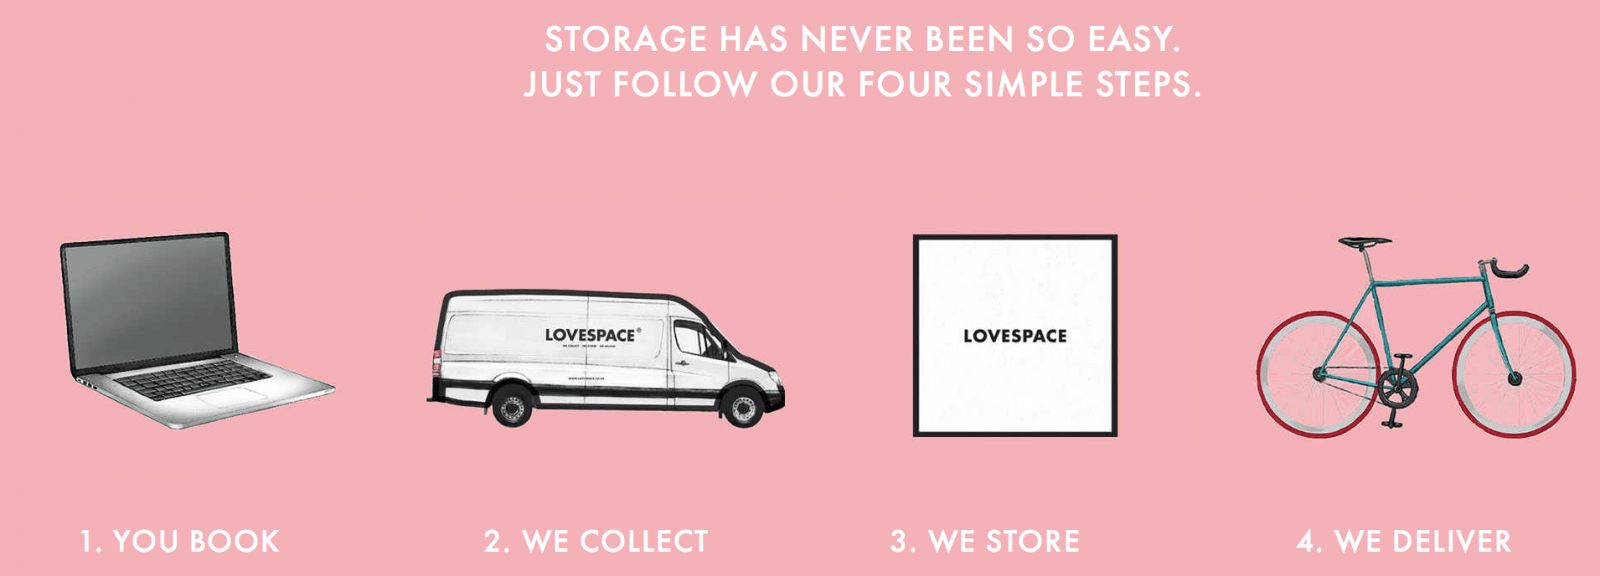 lovespace storage